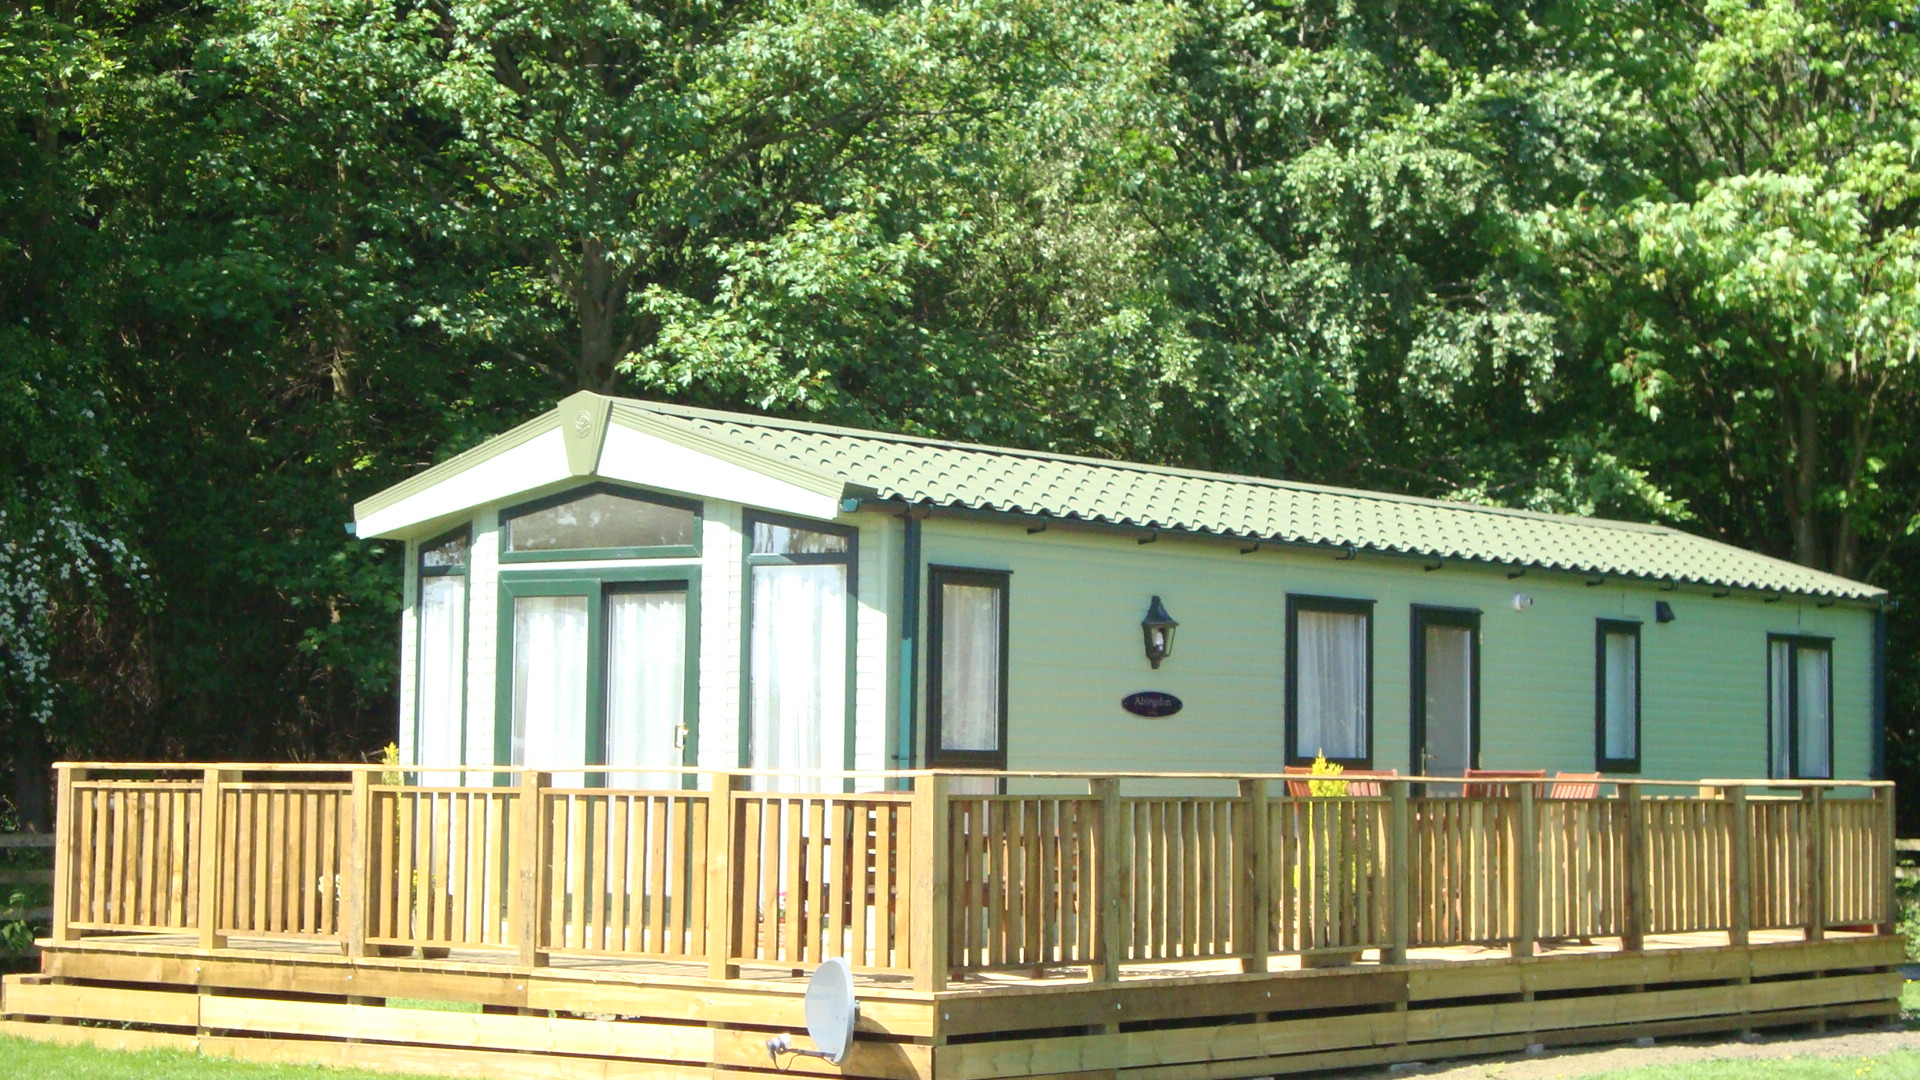 Cool Reynard Crag Holiday Park Harrogate North Yorkshire North Of England